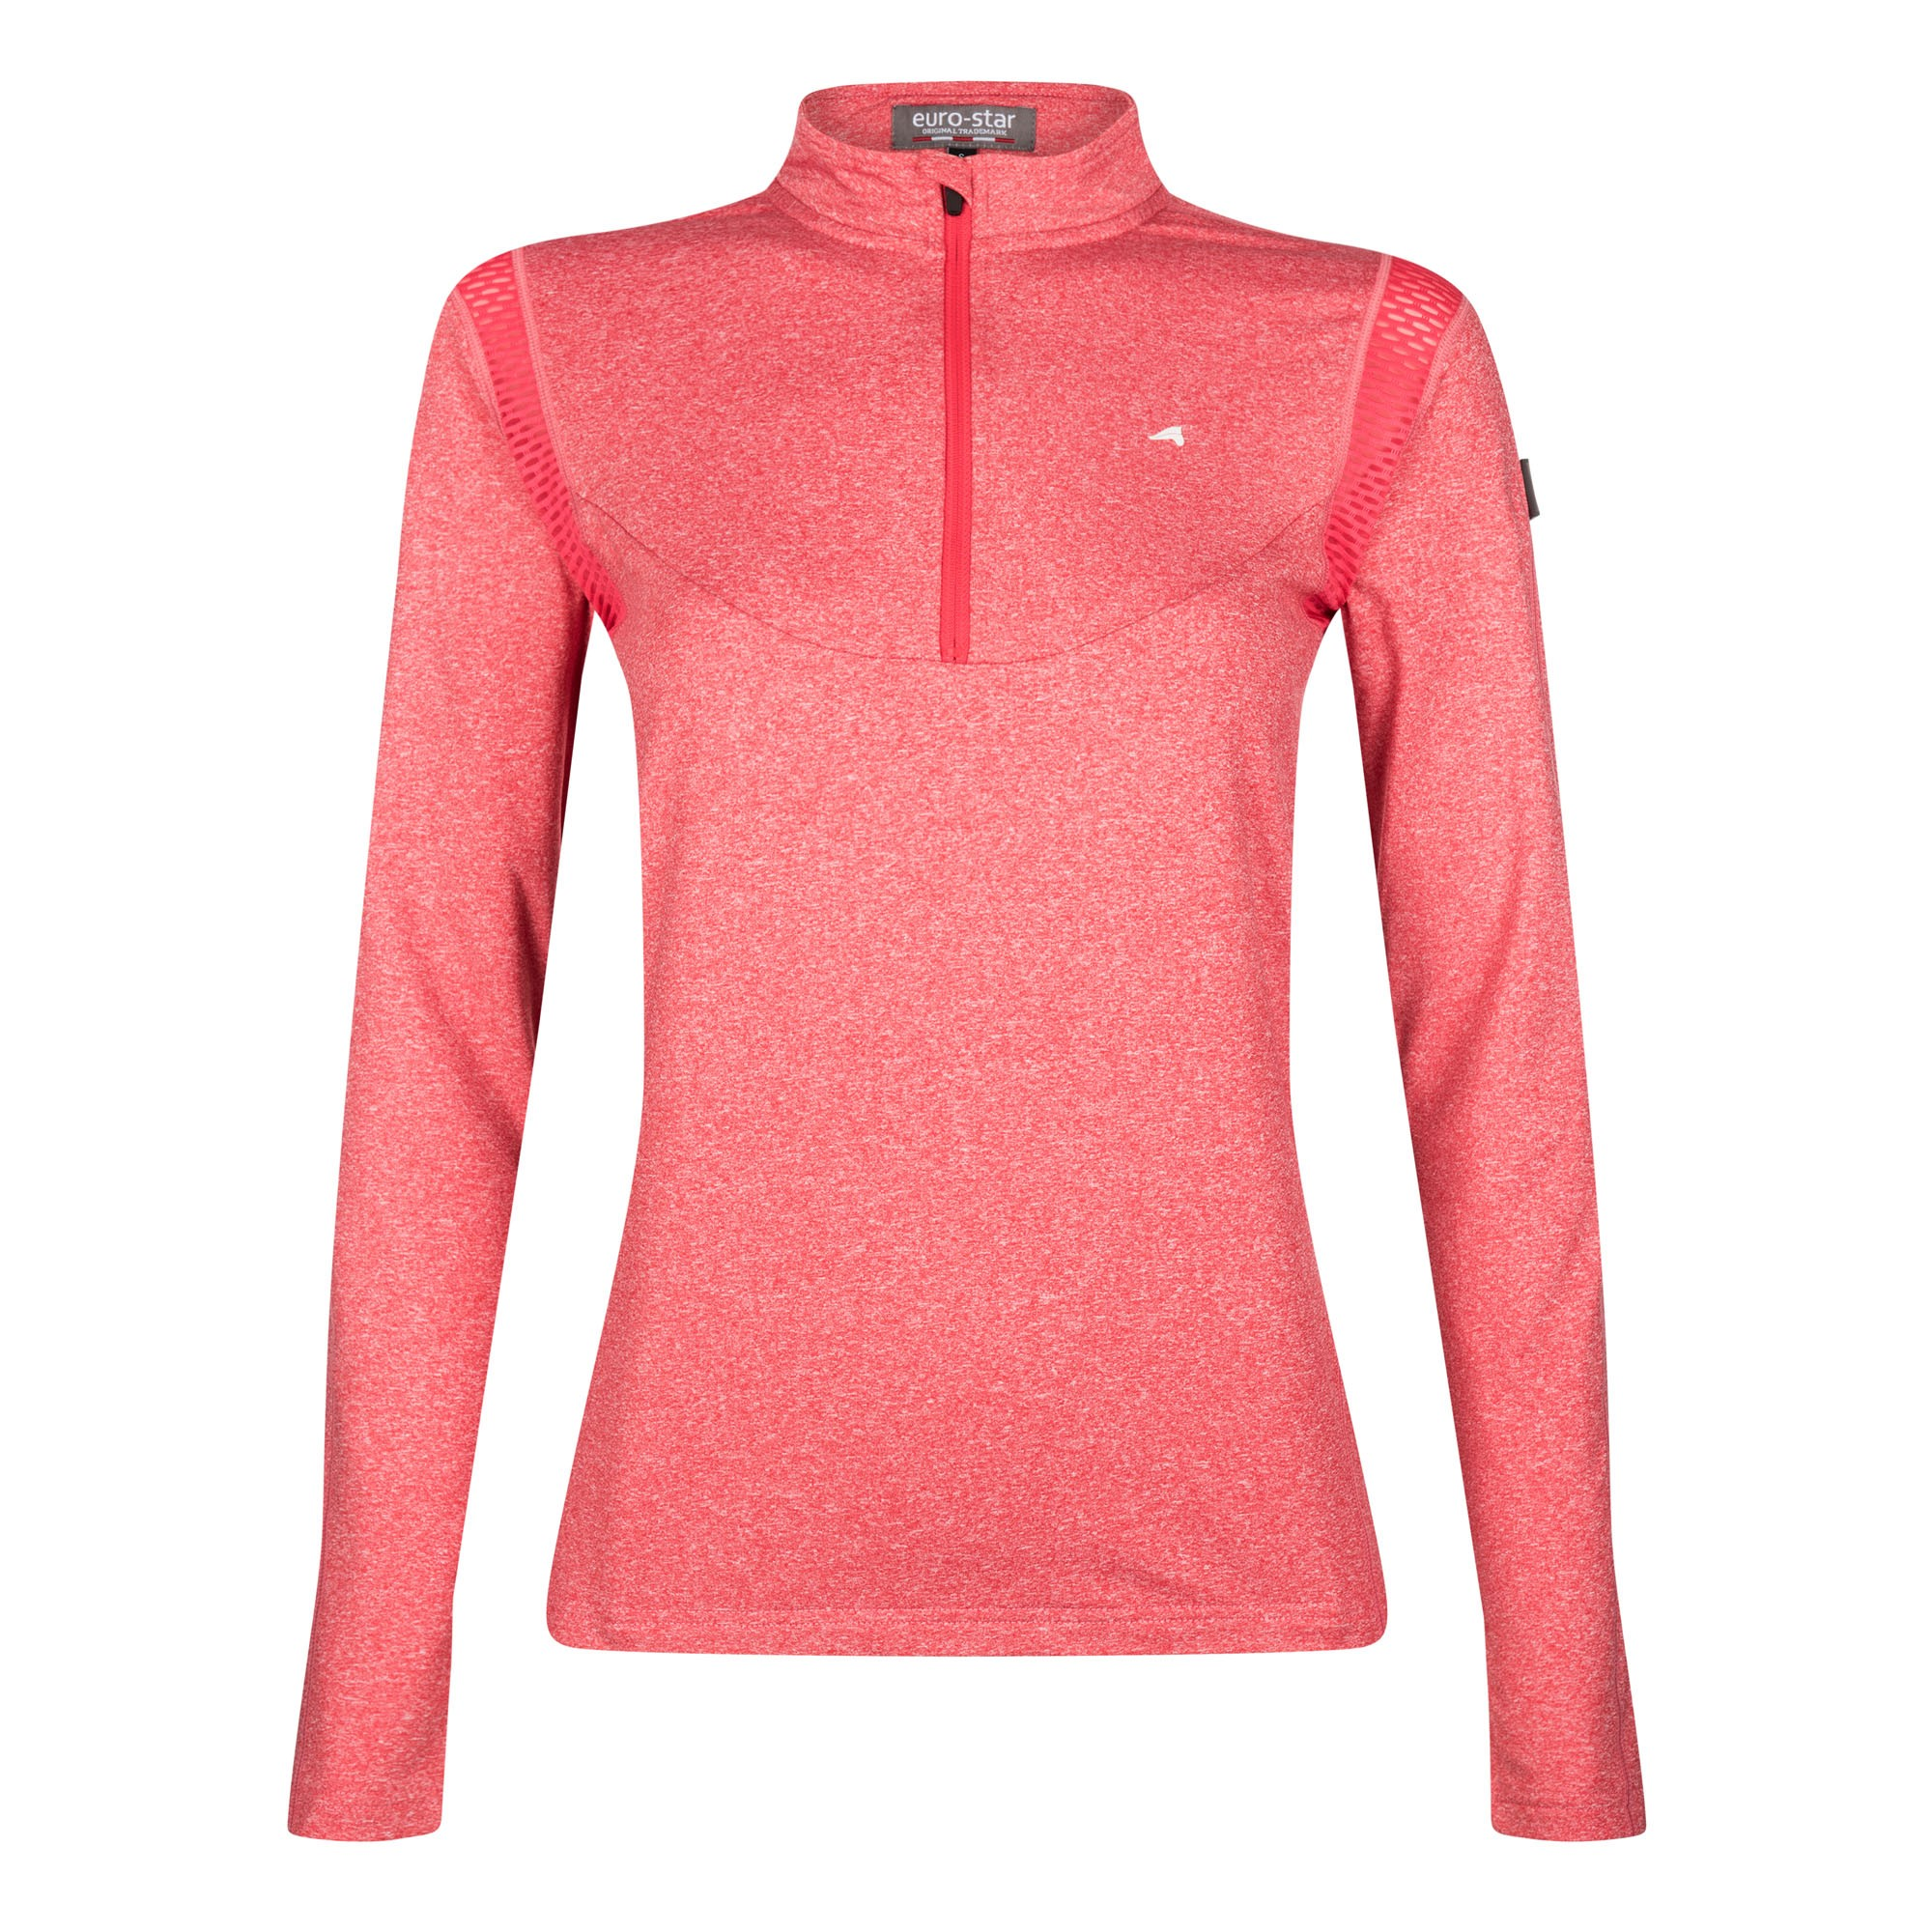 Euro-Star Polina Ladies Technical Shirt  - Thomas Irving's equestrian and accessories store  Euro-Star Polina Ladies Technical Shirt